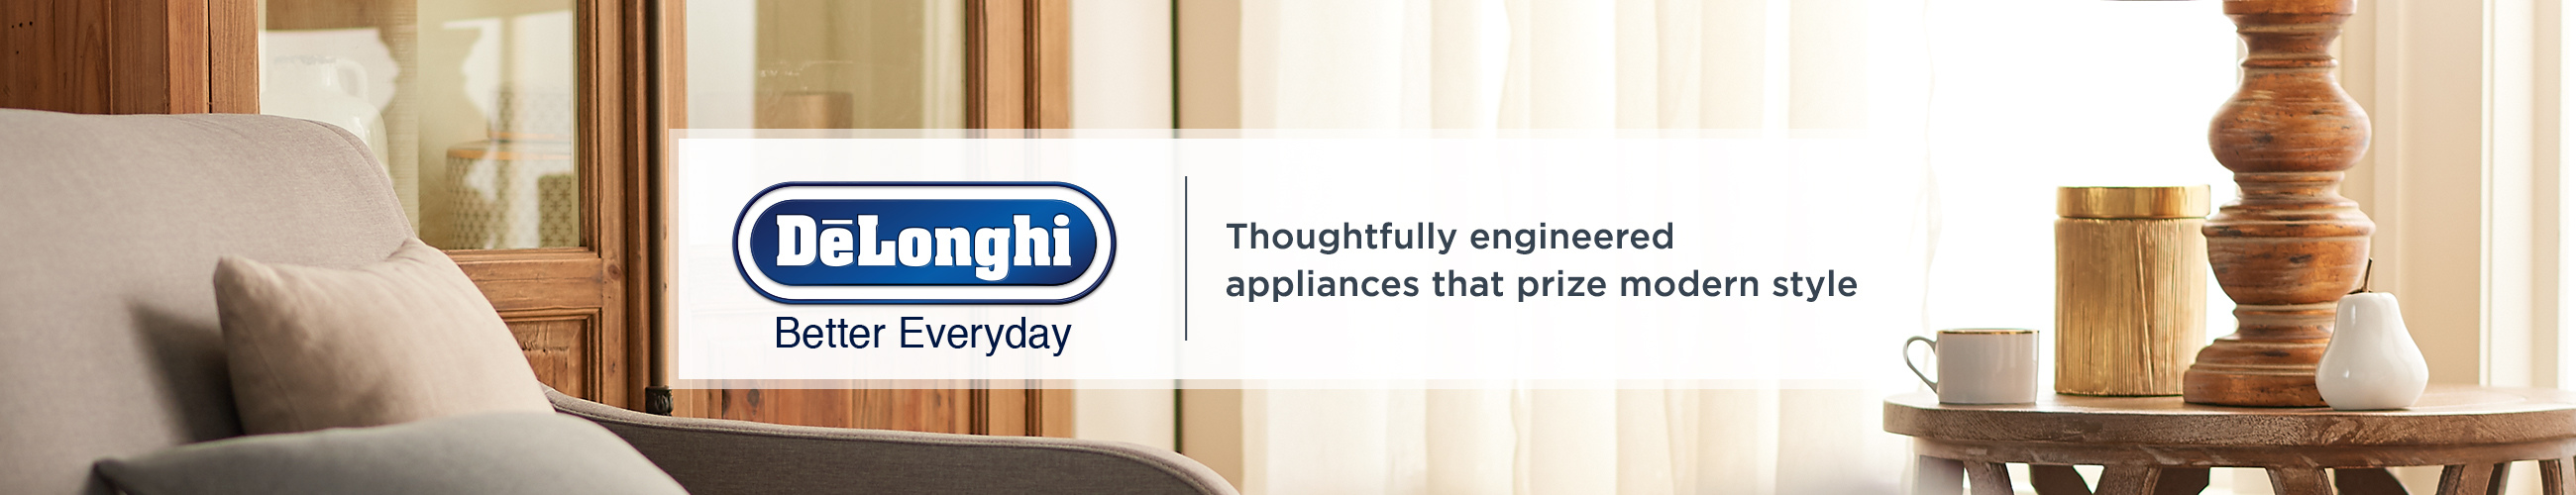 DeLonghi Thoughtfully engineered appliances that prize modern style